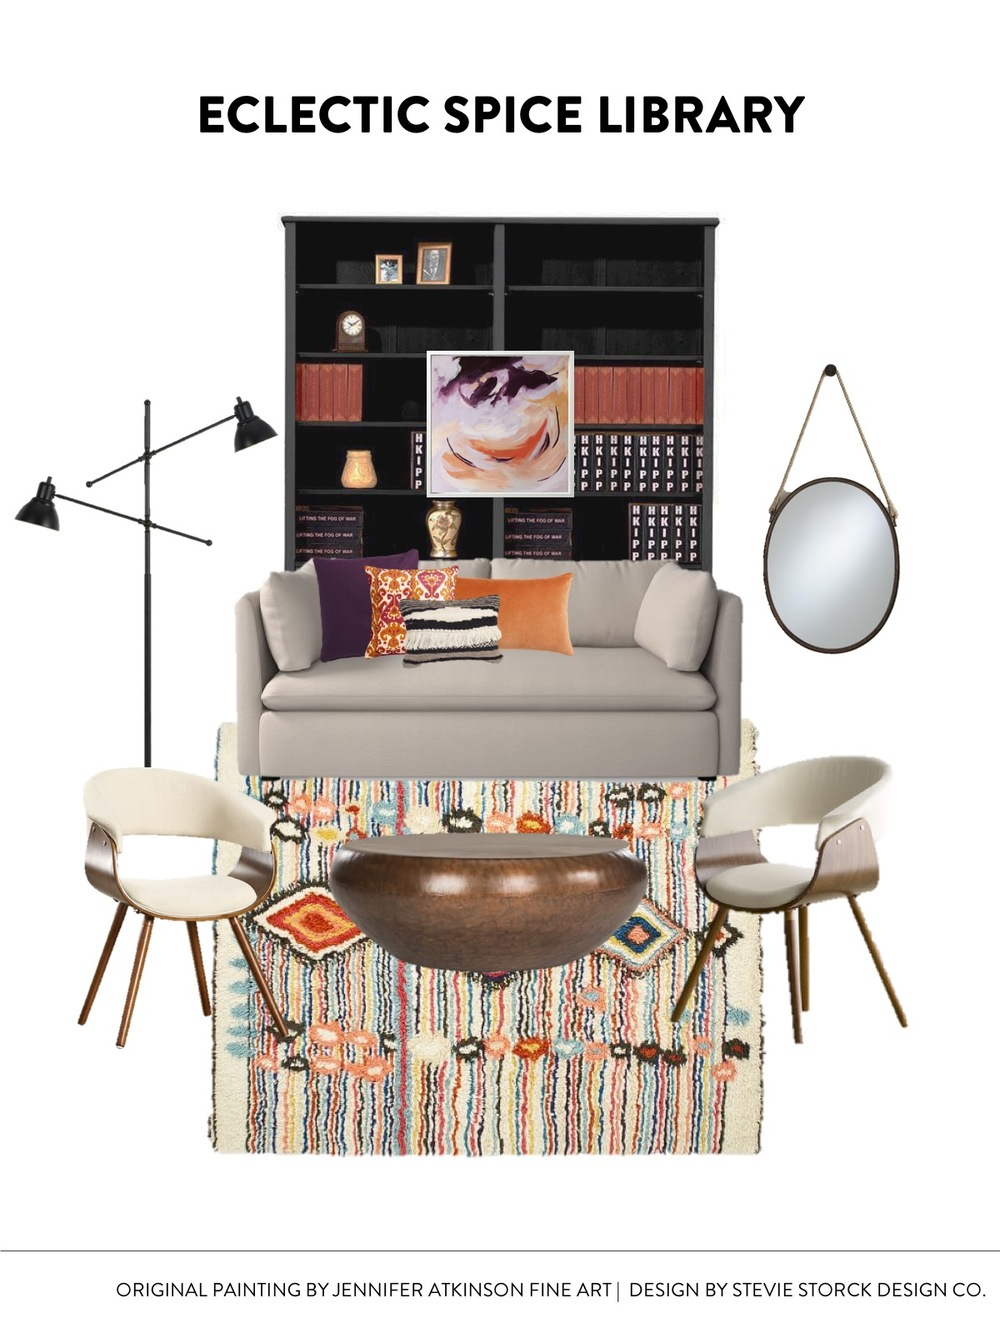 Eclectic Bohemian Spice Library Living Room Study Design Inspiration | CLICK THROUGH FOR SOURCES! Deep purple, aubergine, orange, persimmon, black bookcase, boucherite rug, midcentury modern bent wood chairs, modern eclectic boho style